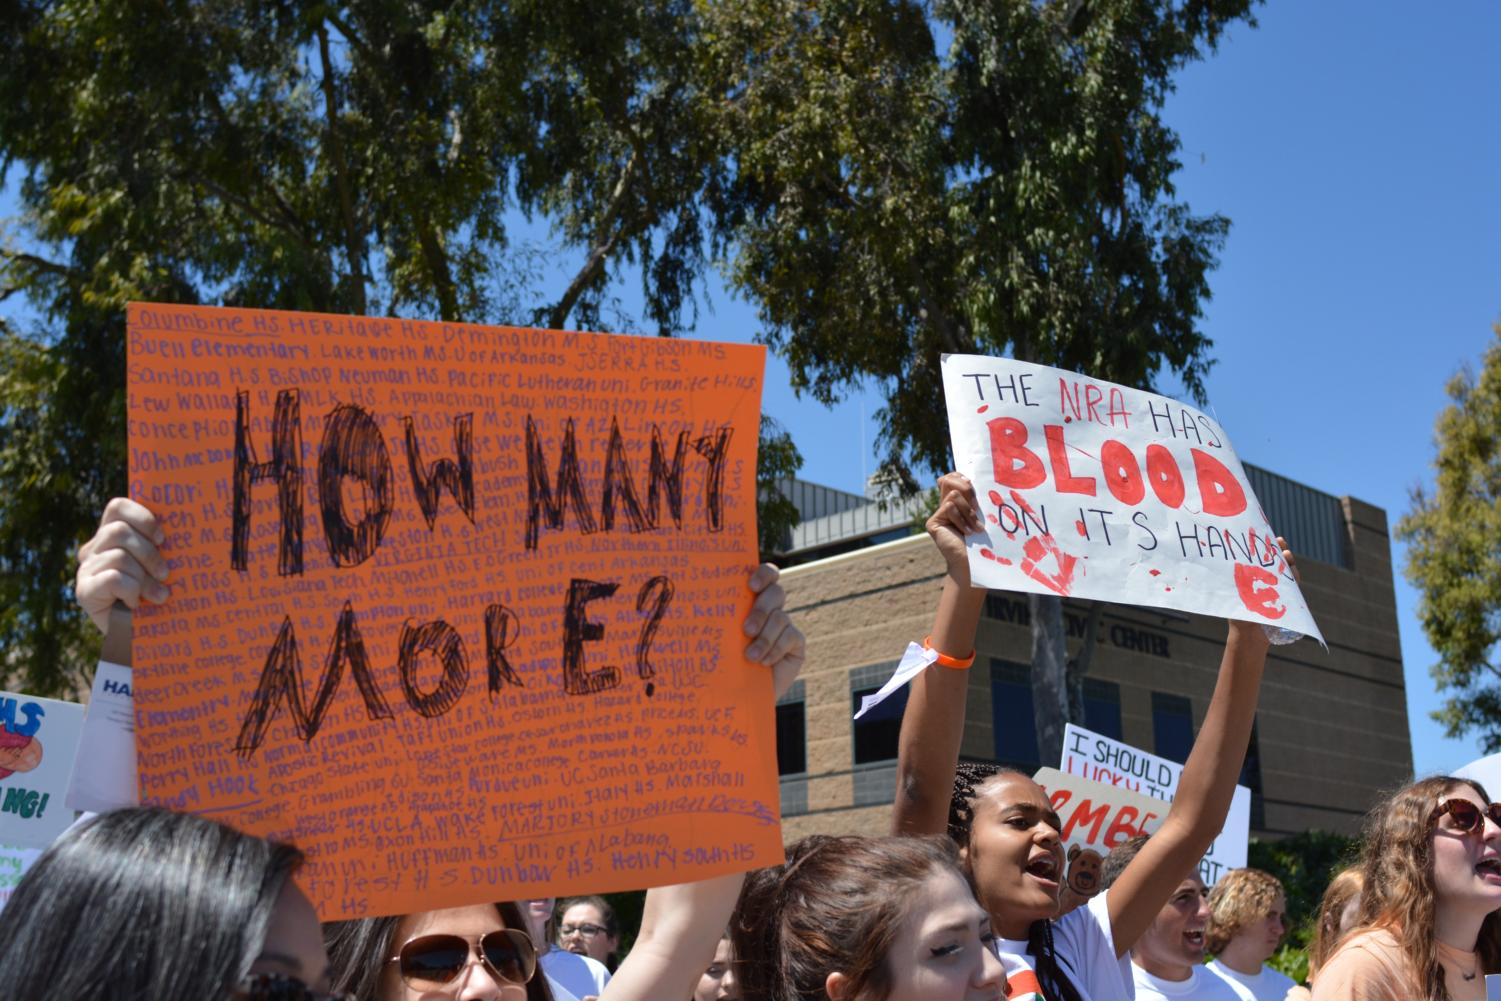 Students gather in Irvine California to participate in the national student walkout. Those involved in the rally promoted reform to gun legislation in the United States.